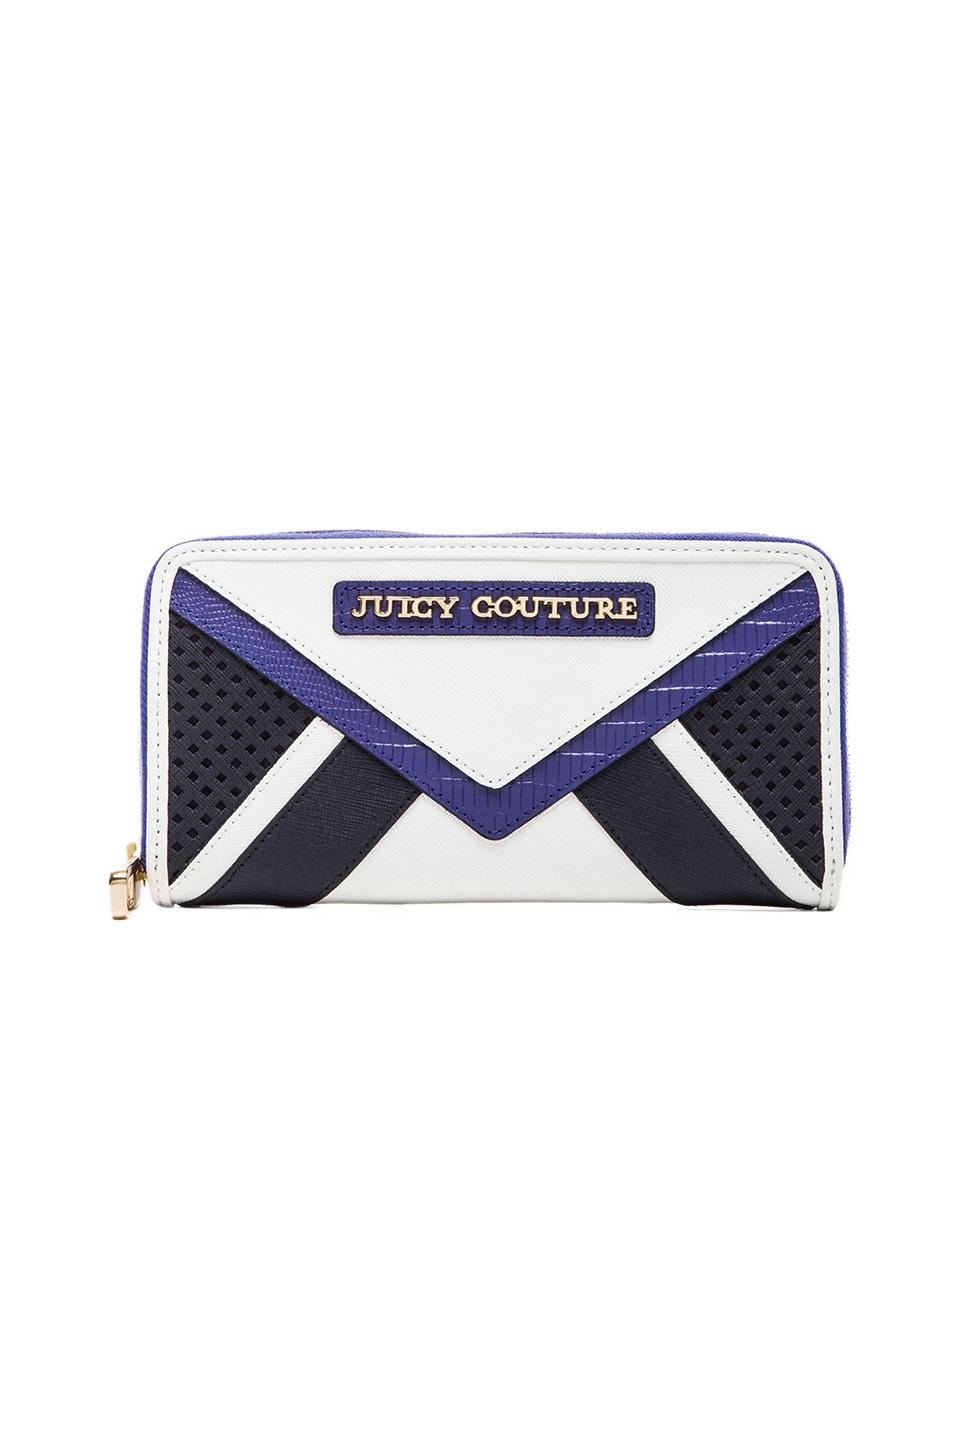 Juicy Couture Sierra Colorblock Zip Continental Wallet in Regal Multi